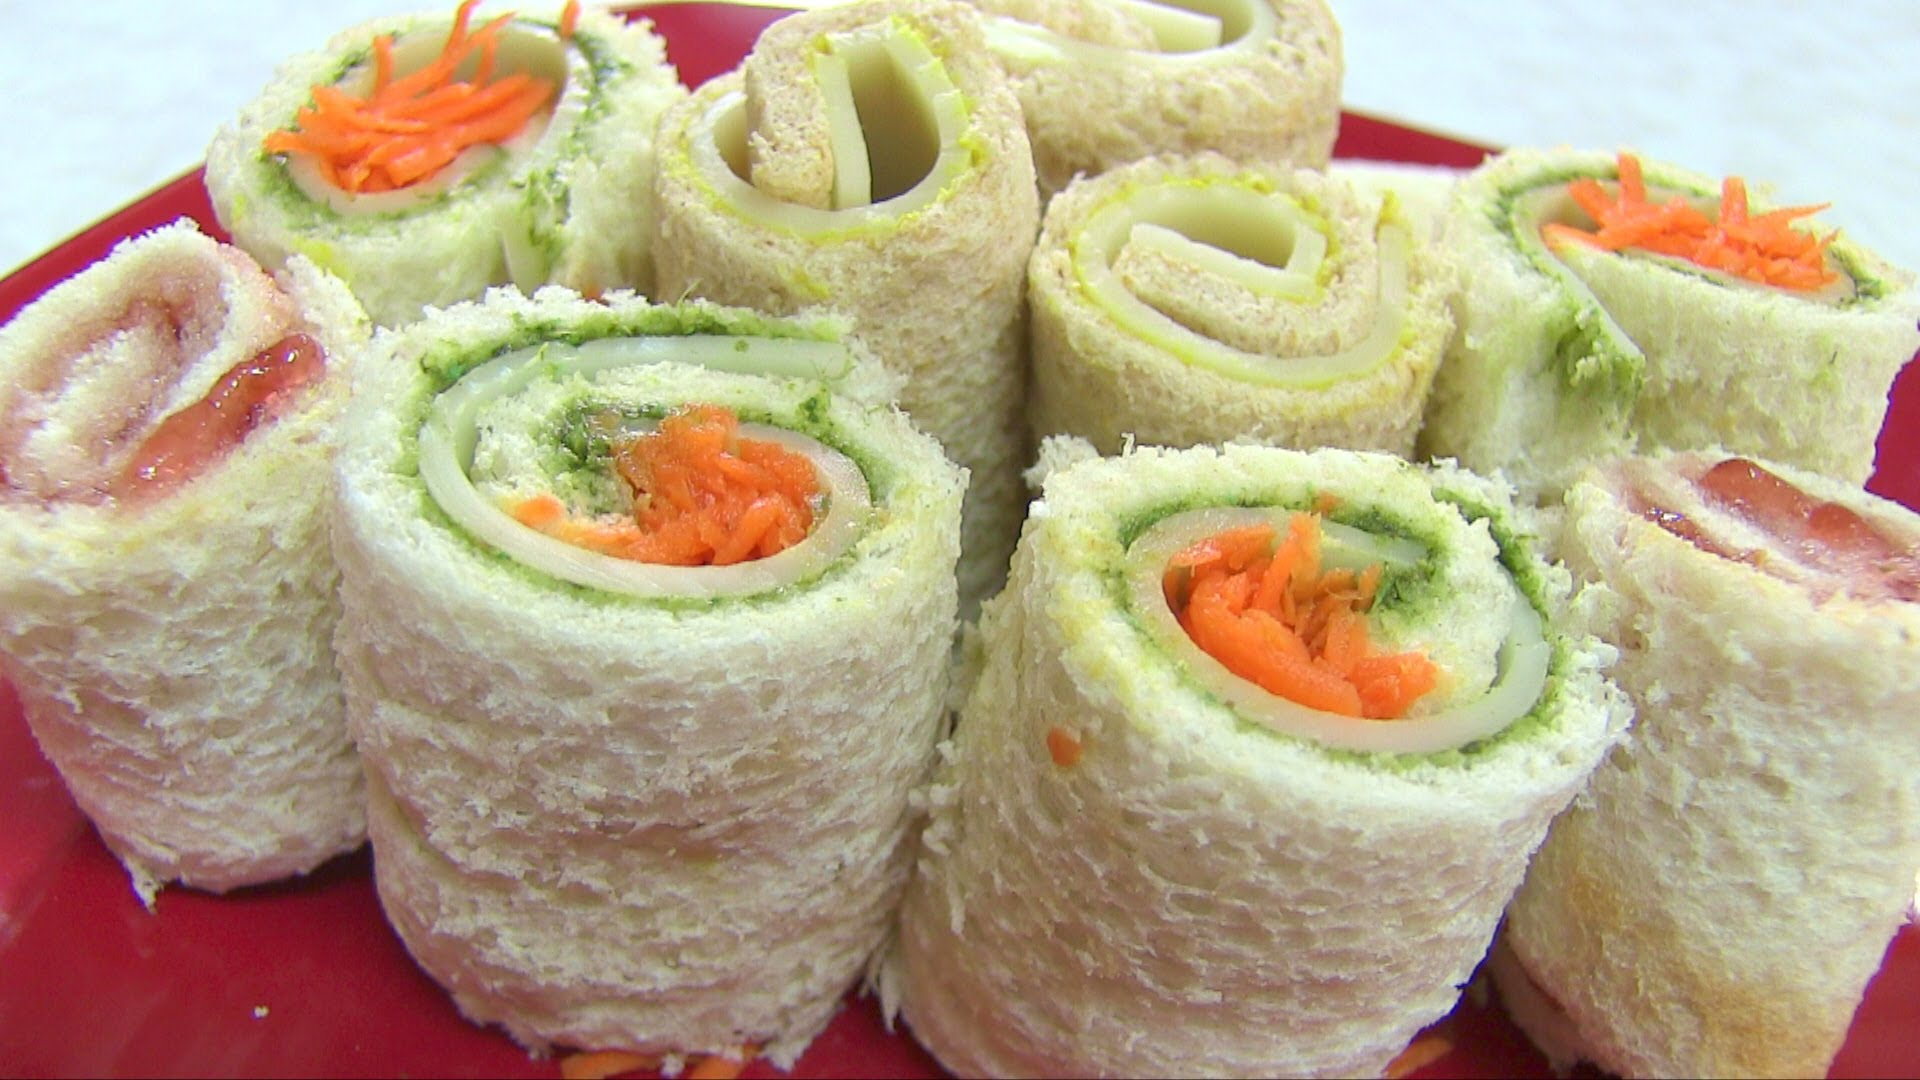 Youll want to make your own easy peasy sandwich rollups after this youll want to make your own easy peasy sandwich rollups after this video playbuzz forumfinder Choice Image